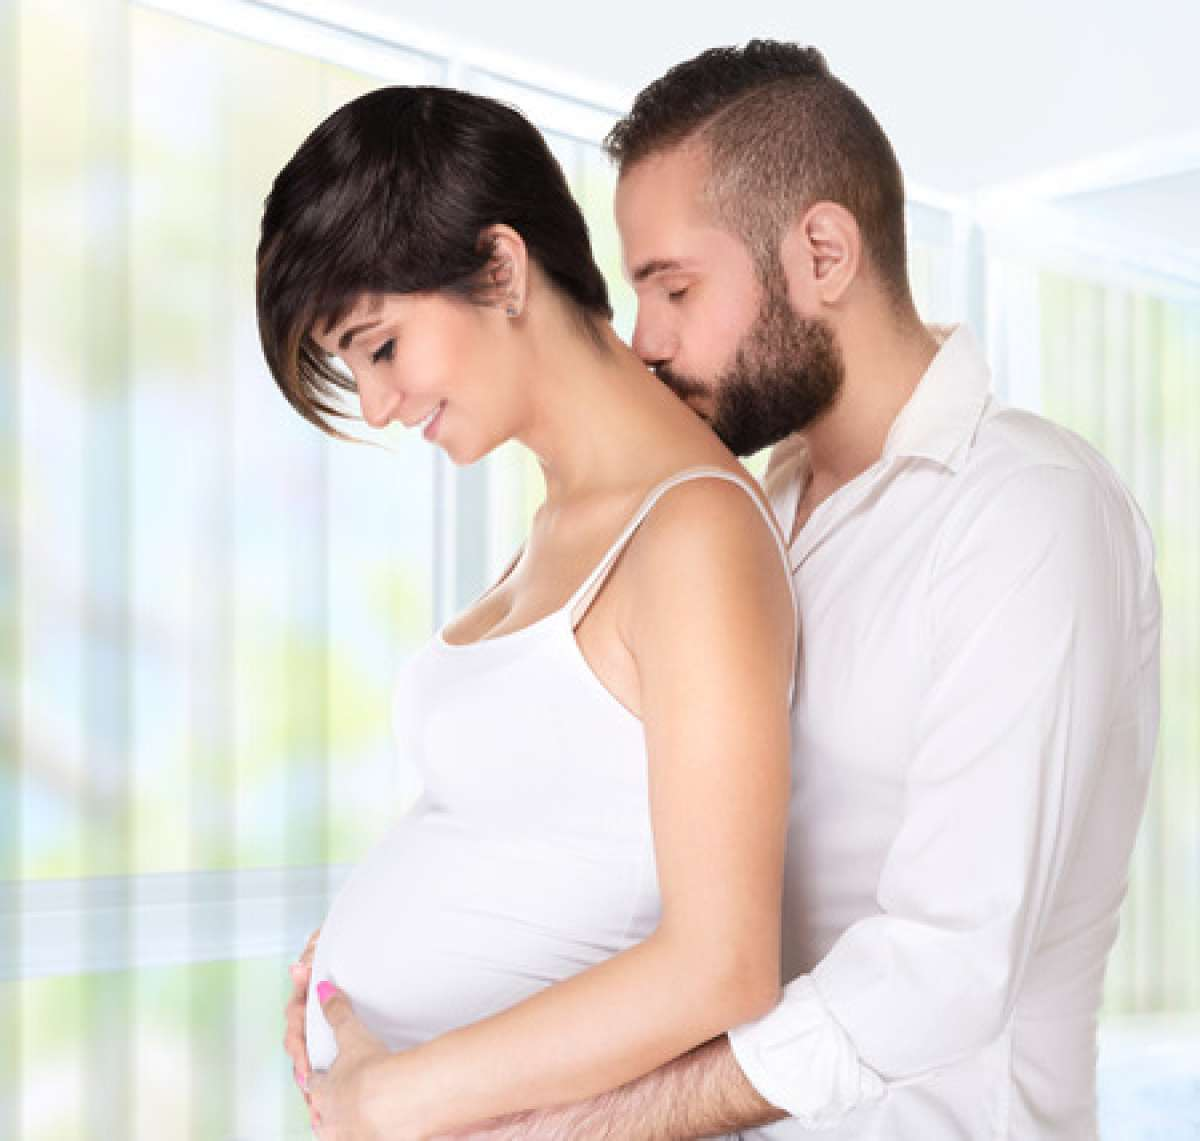 Staying Intimate During Pregnancy